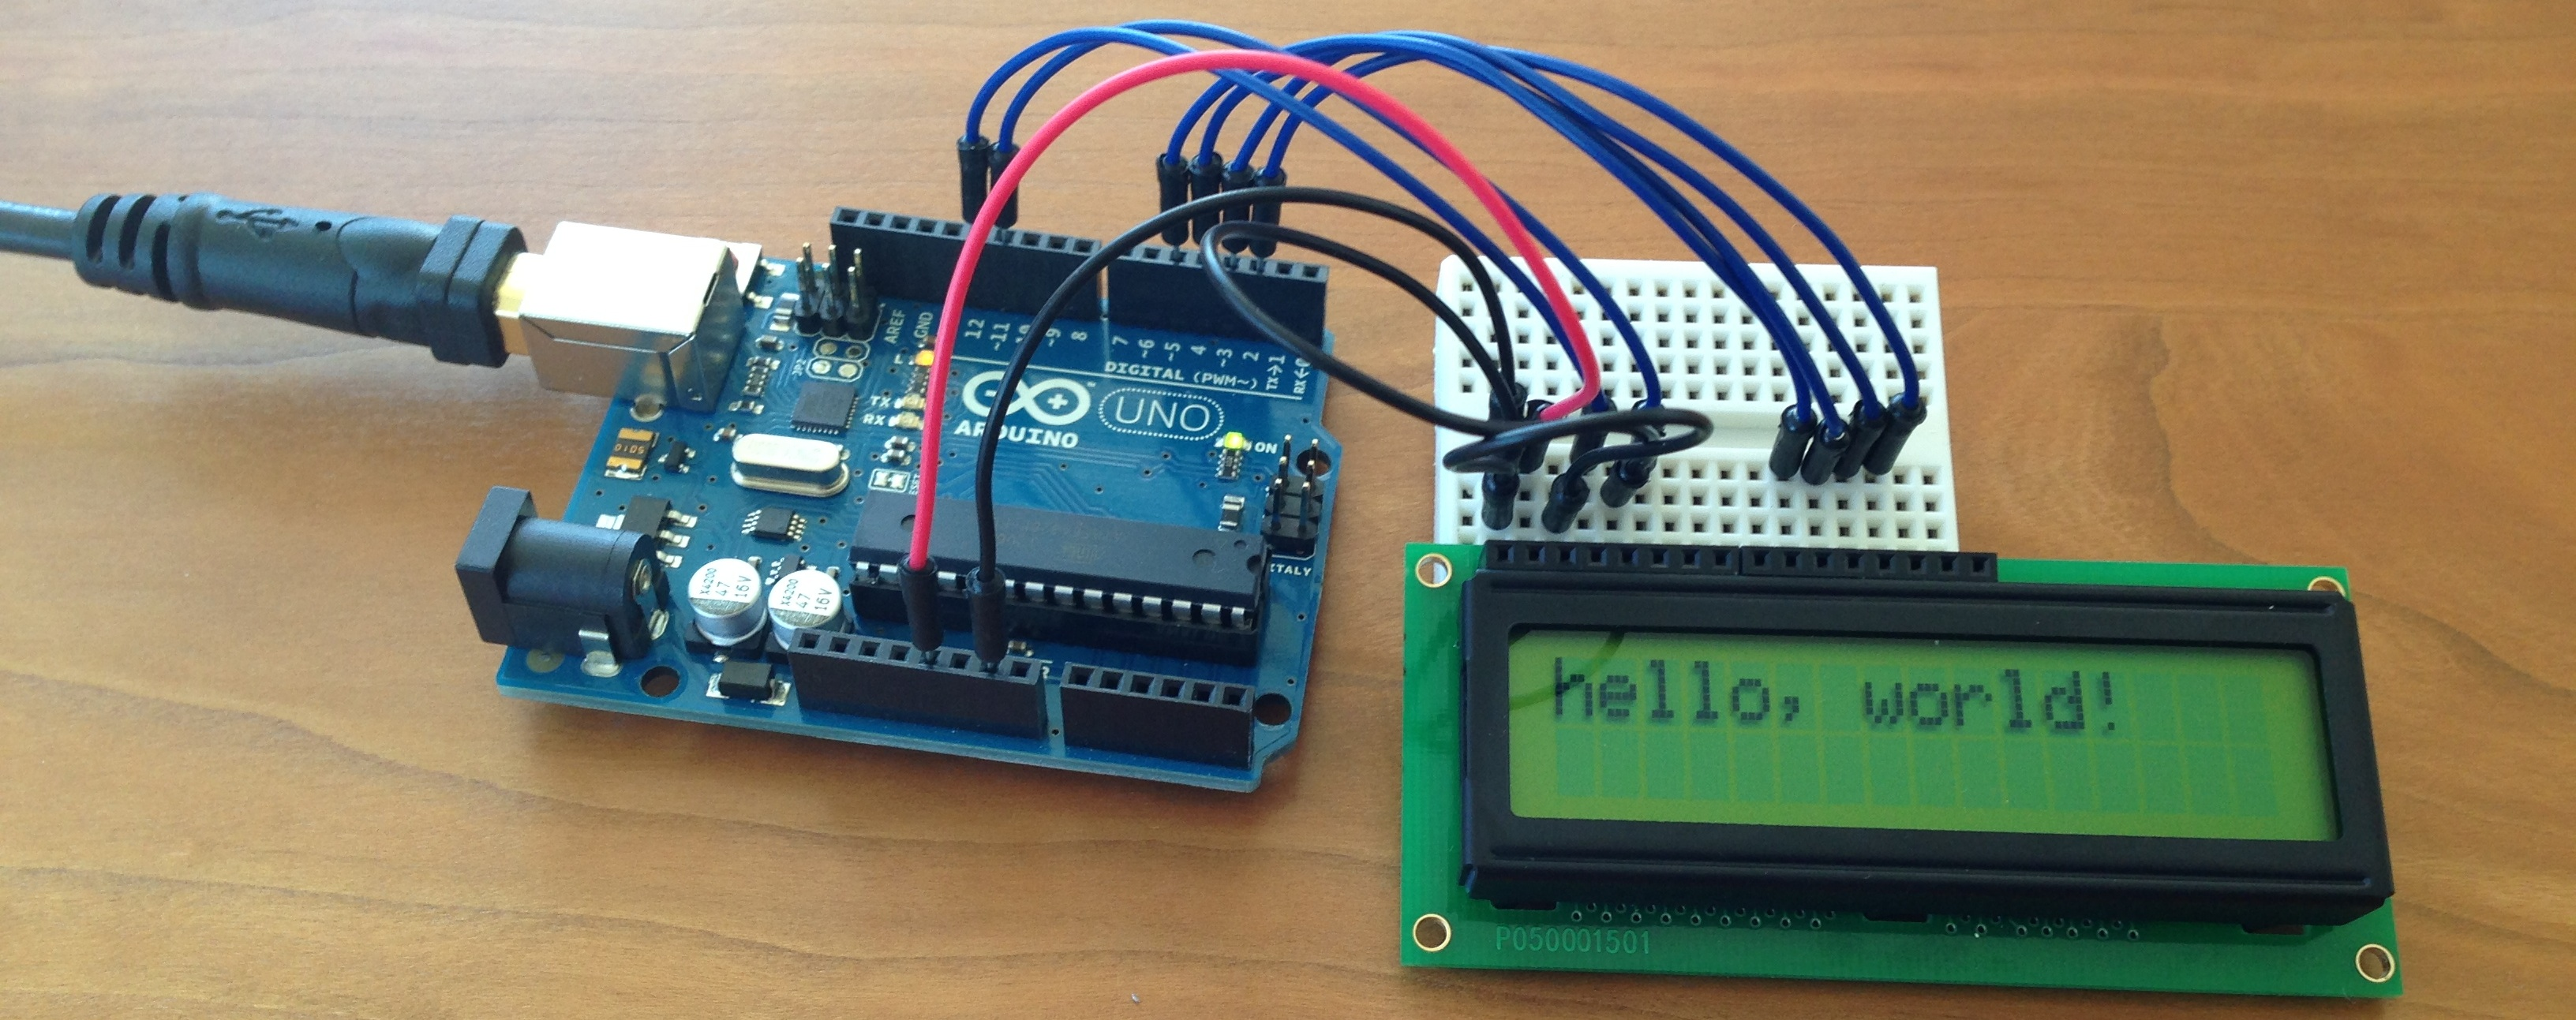 Arduino showing information from a gps on lcd